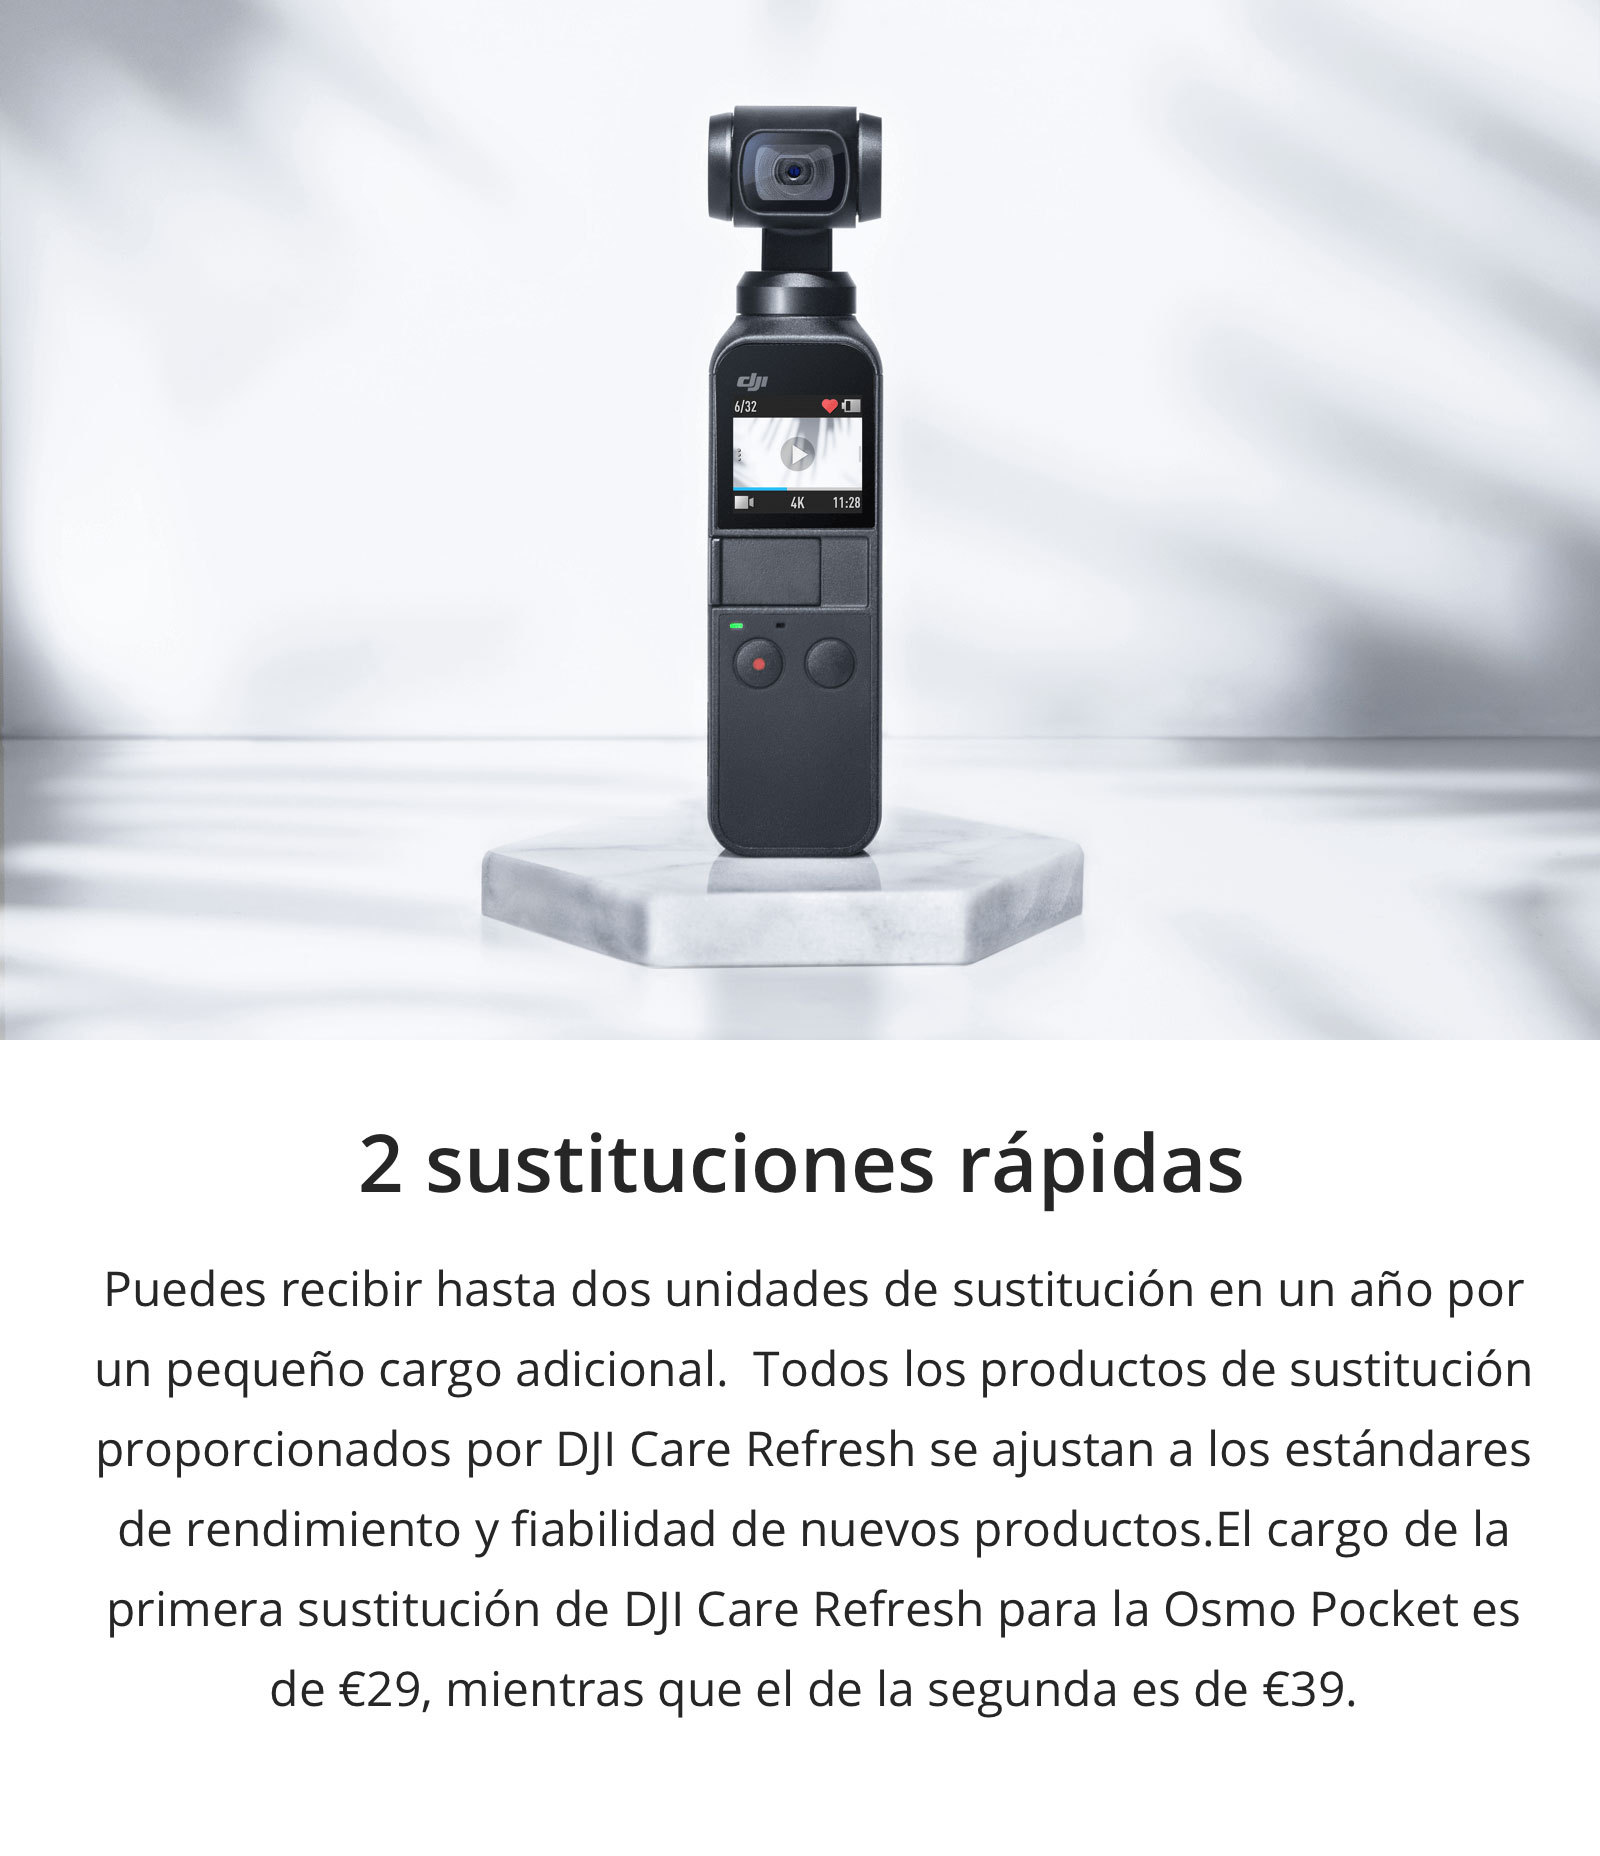 DJI_Care_refresh_osmo_pocket_stockrc1